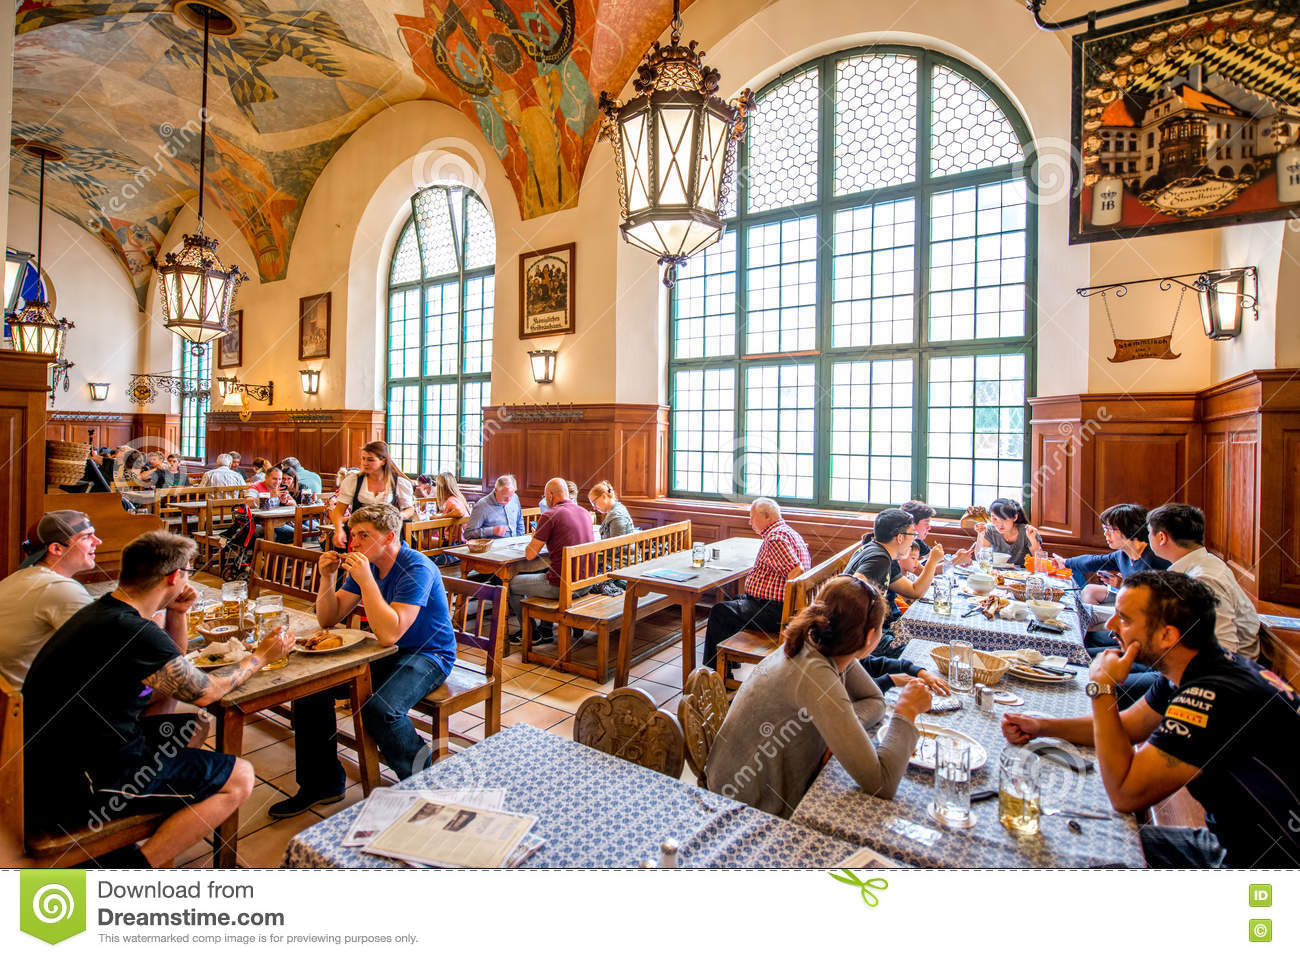 Crowded restaurant table - Hofbrauhaus Interior In Munich Editorial Stock Image